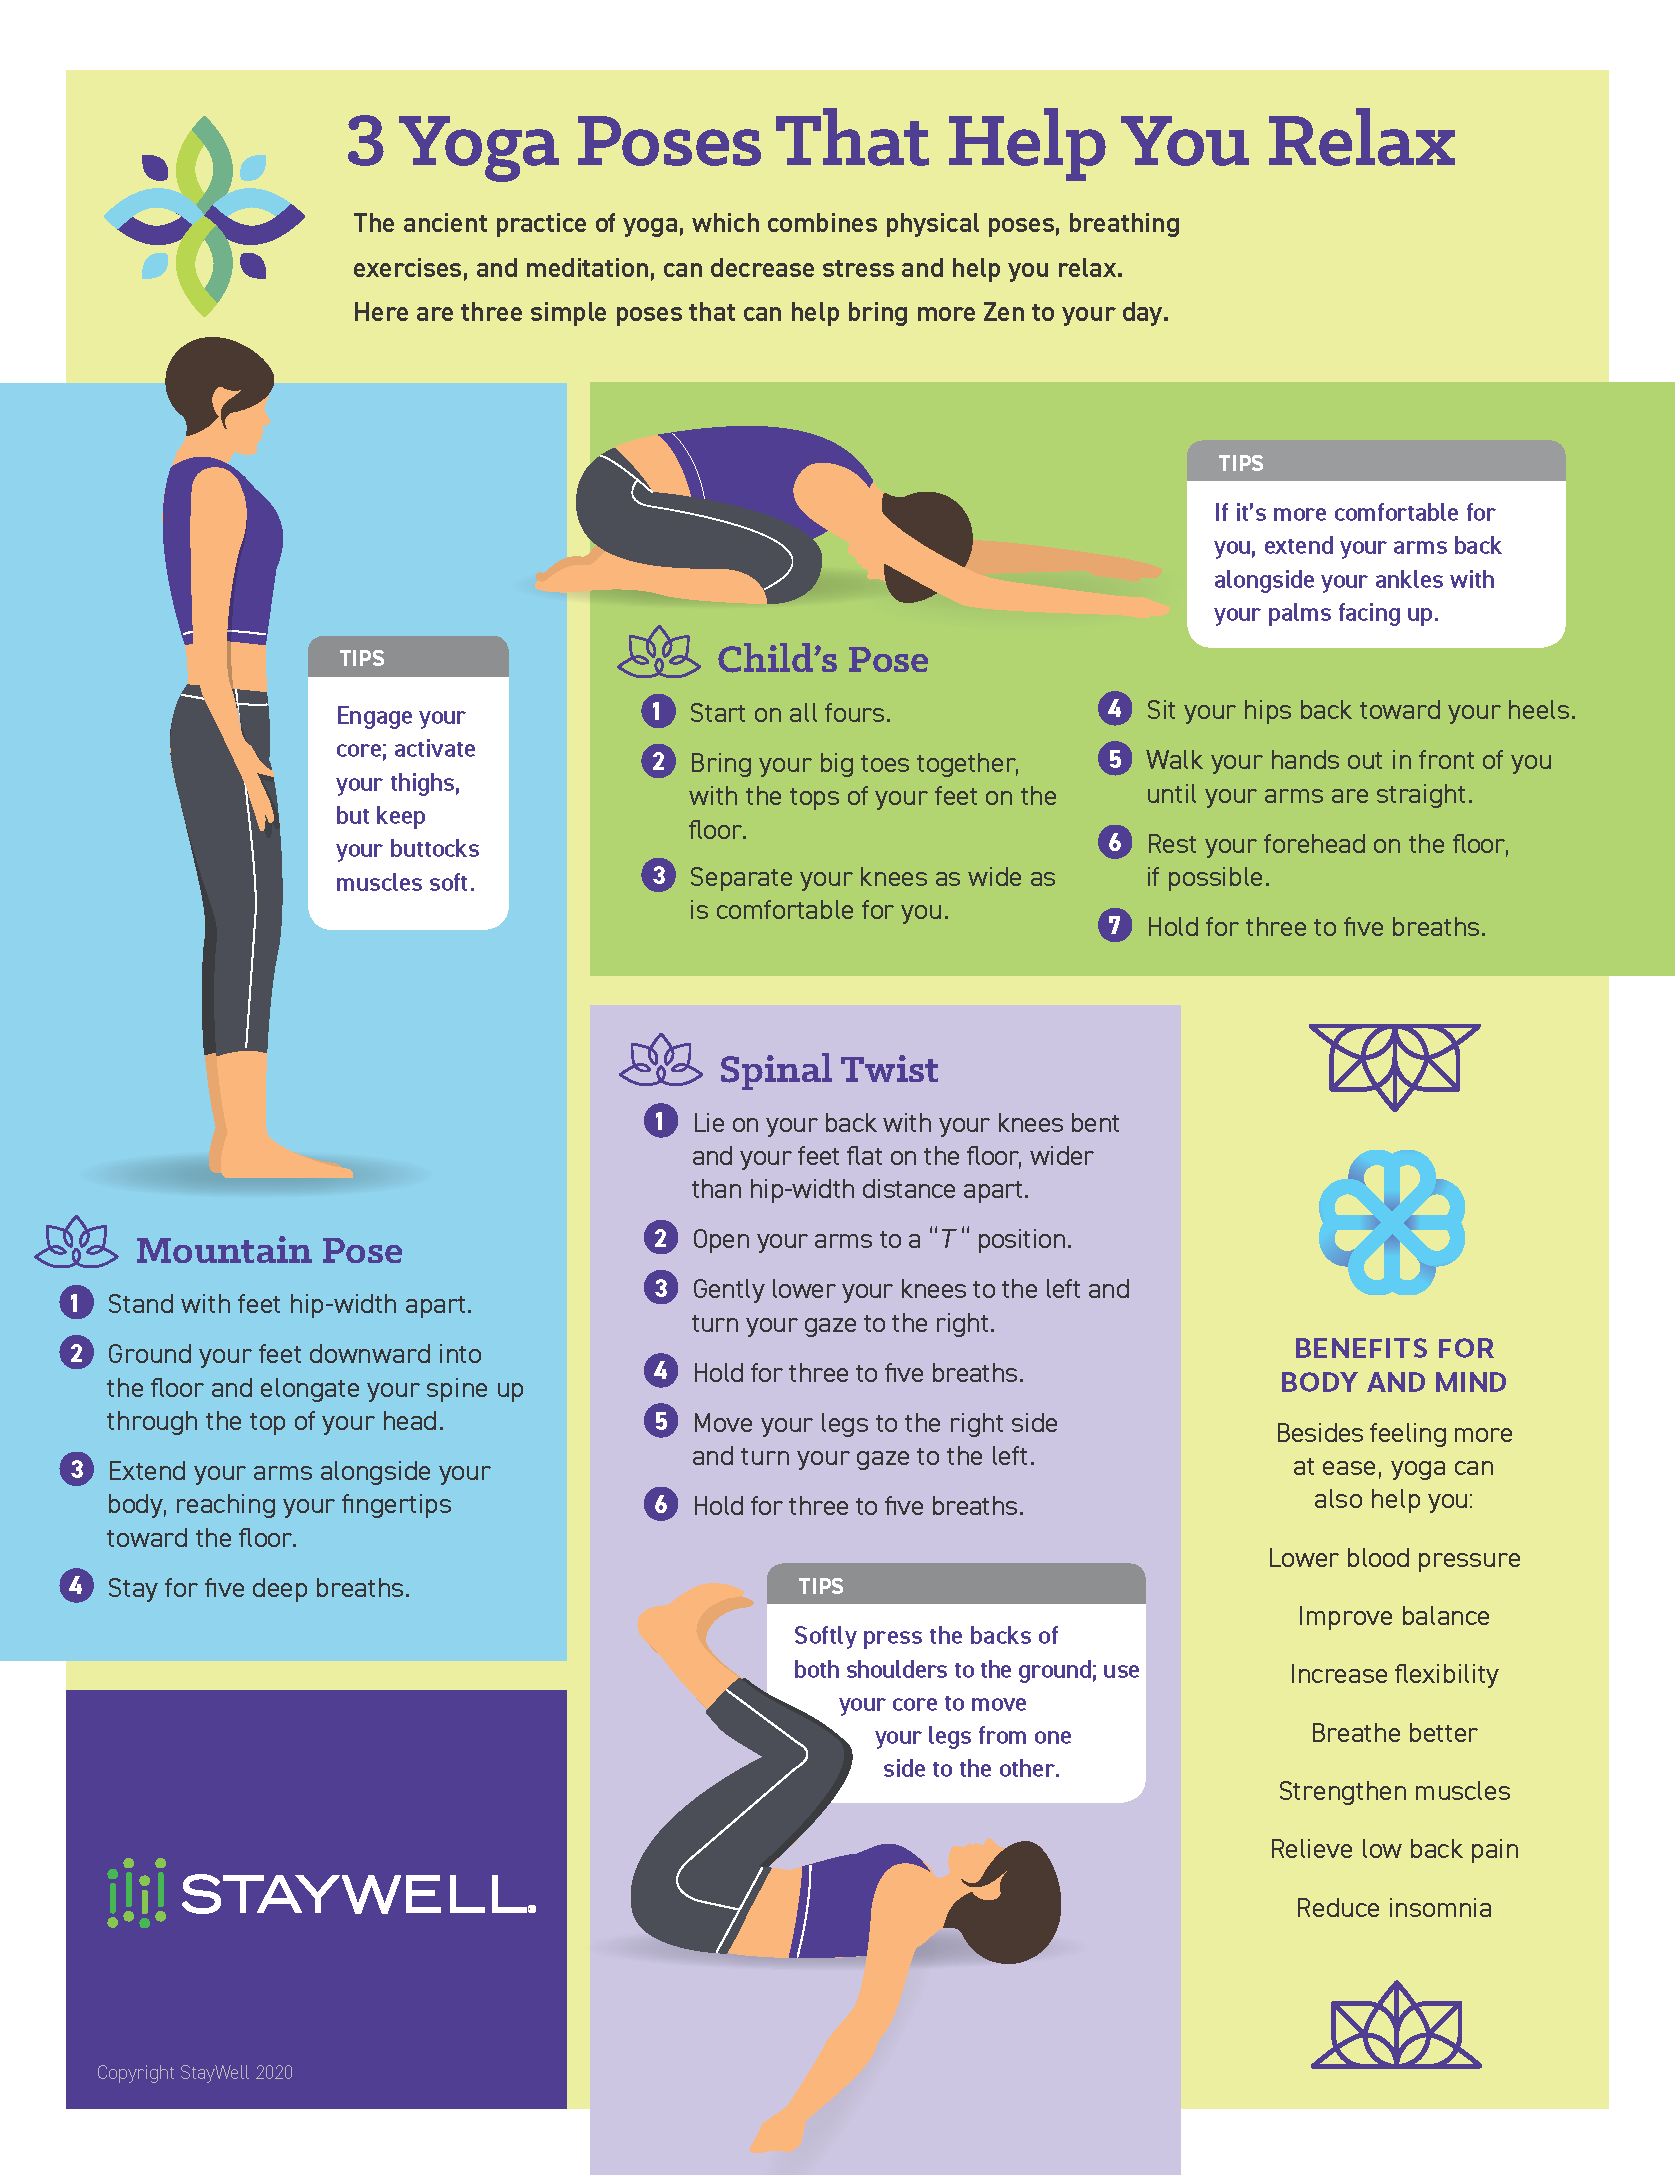 StayWell Yoga Poses That Help You Relax